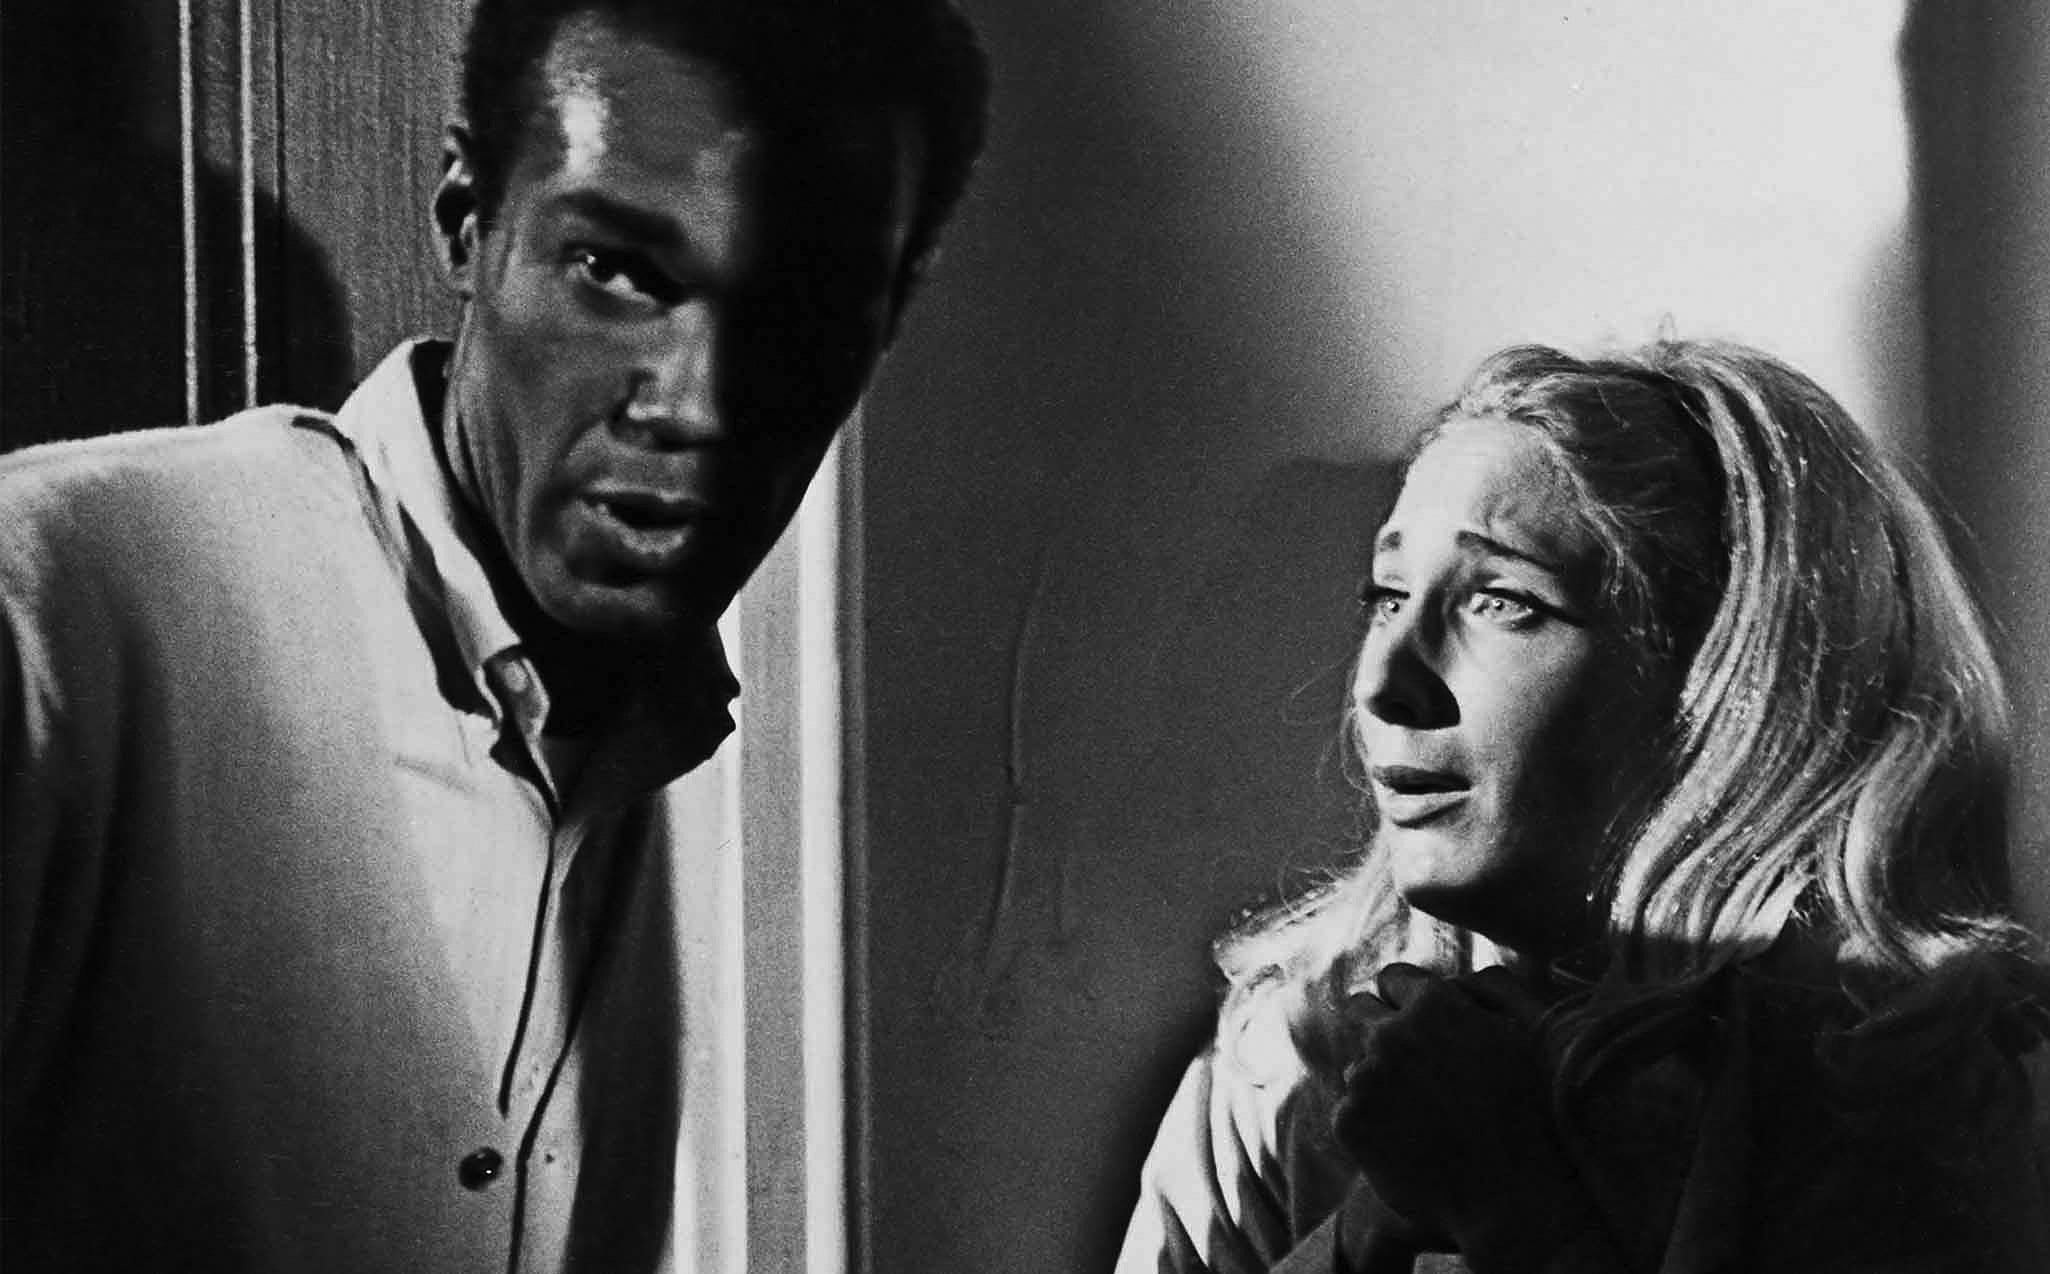 Duane Jones (Ben) and Judith O